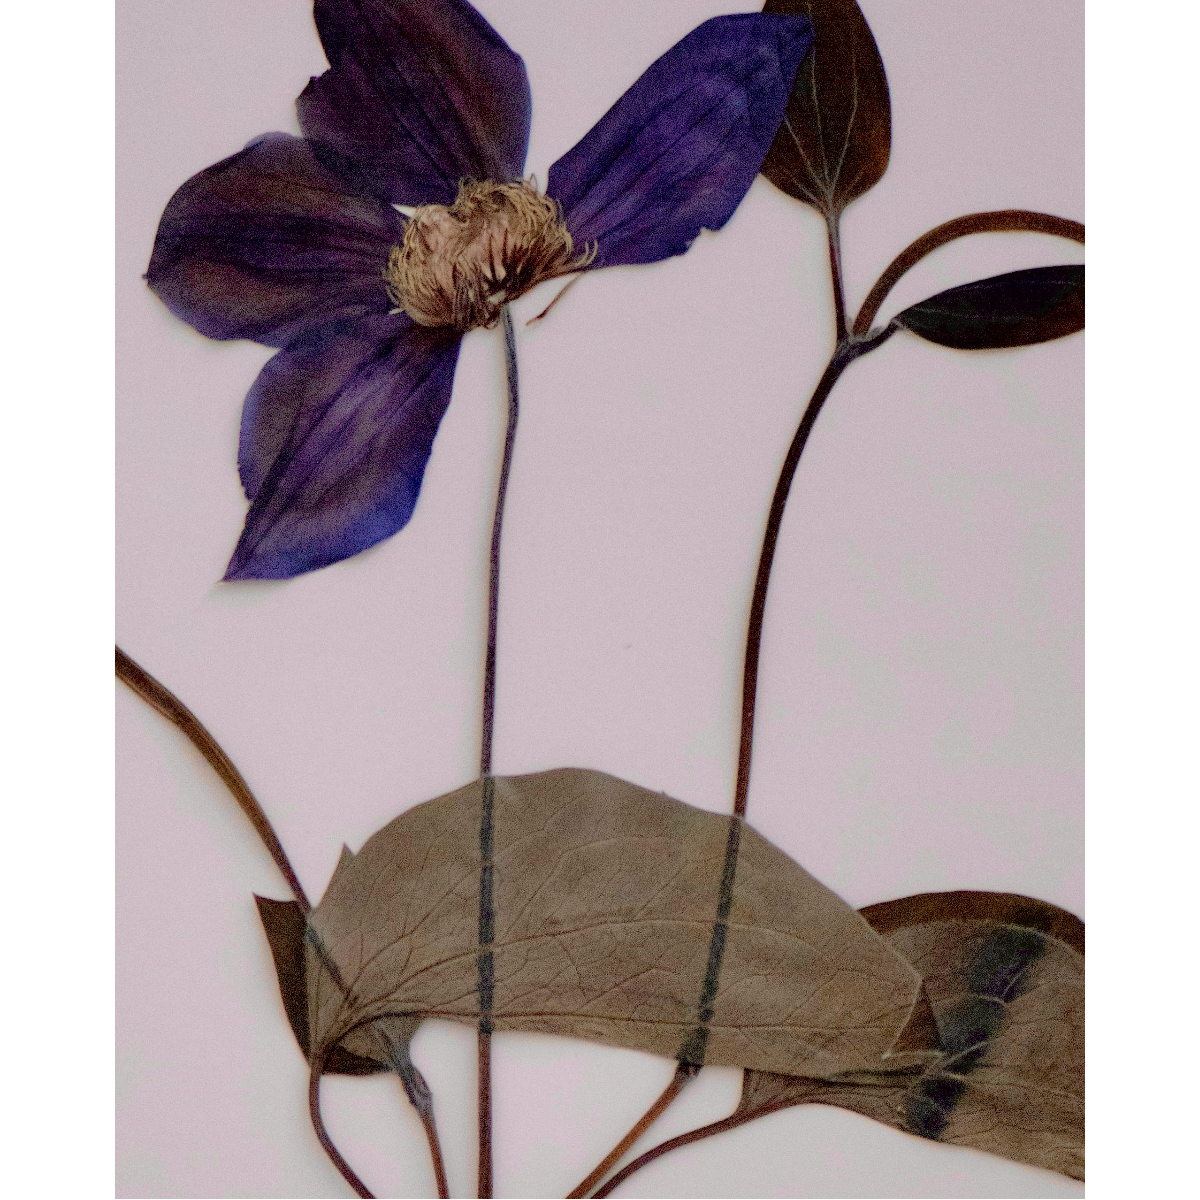 Sabrina Hoelzer Clematis. Detail from framed plate 40 x 50 cm